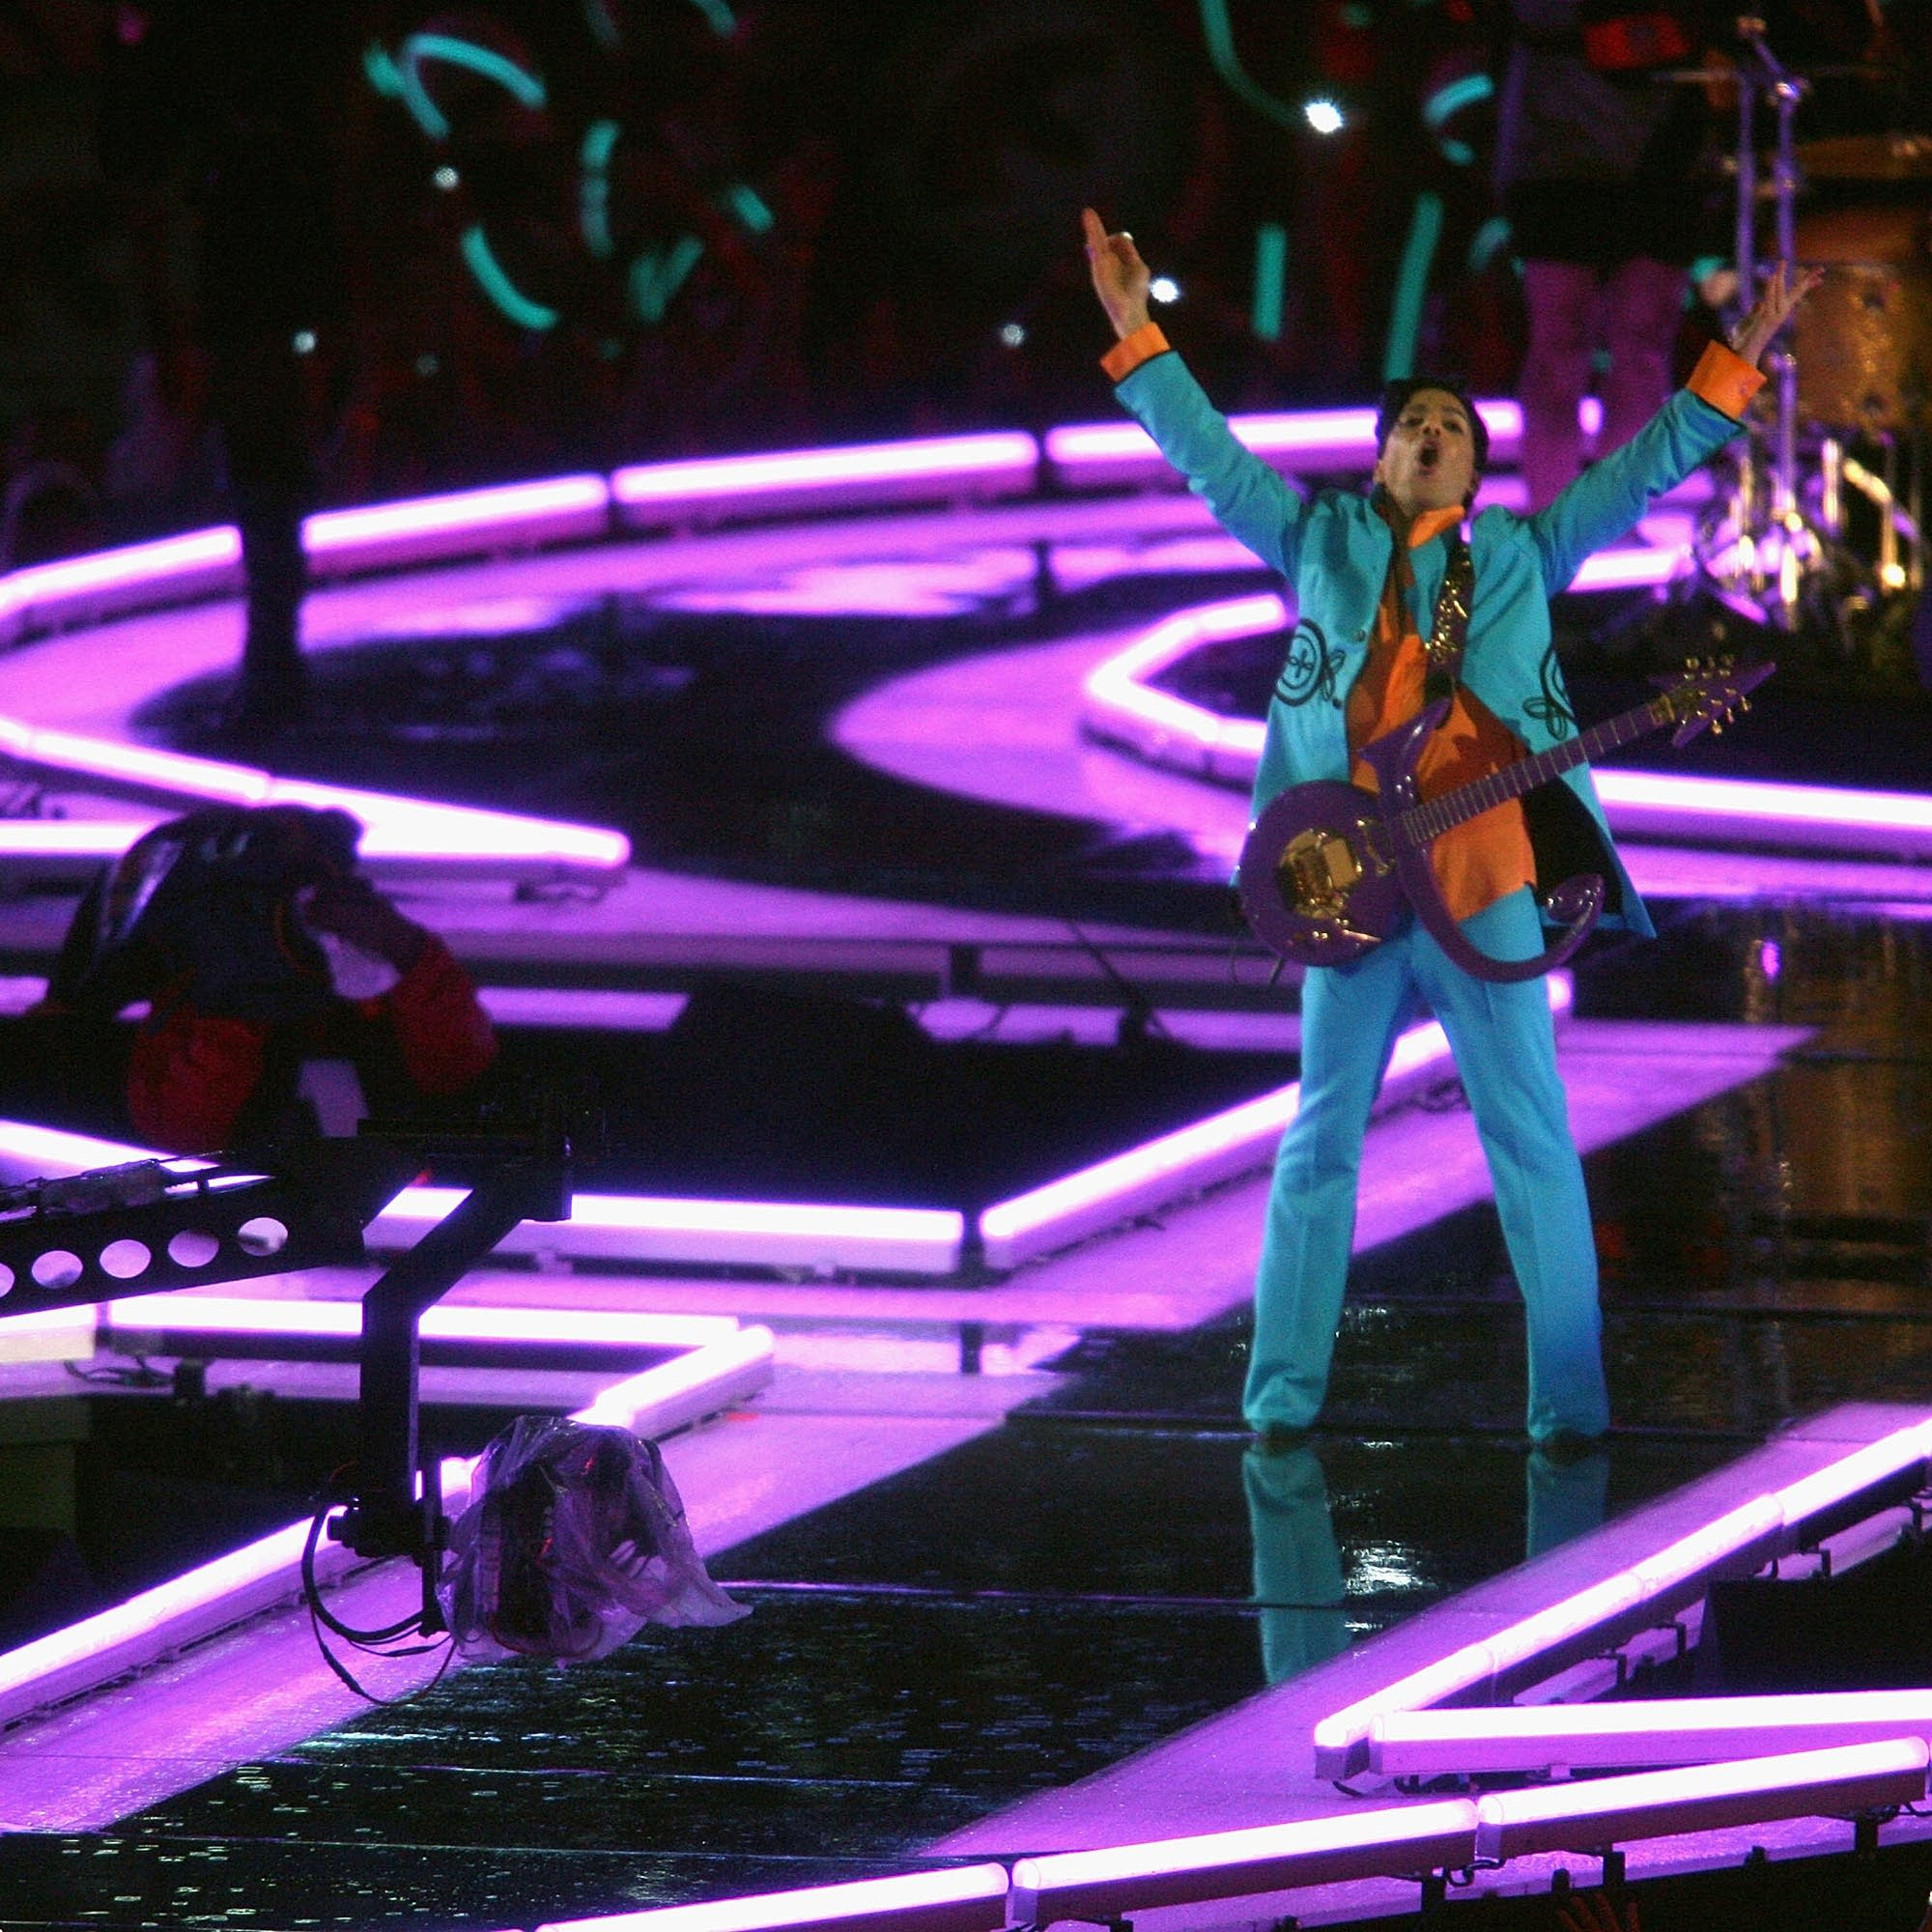 Prince at the 2007 Super Bowl